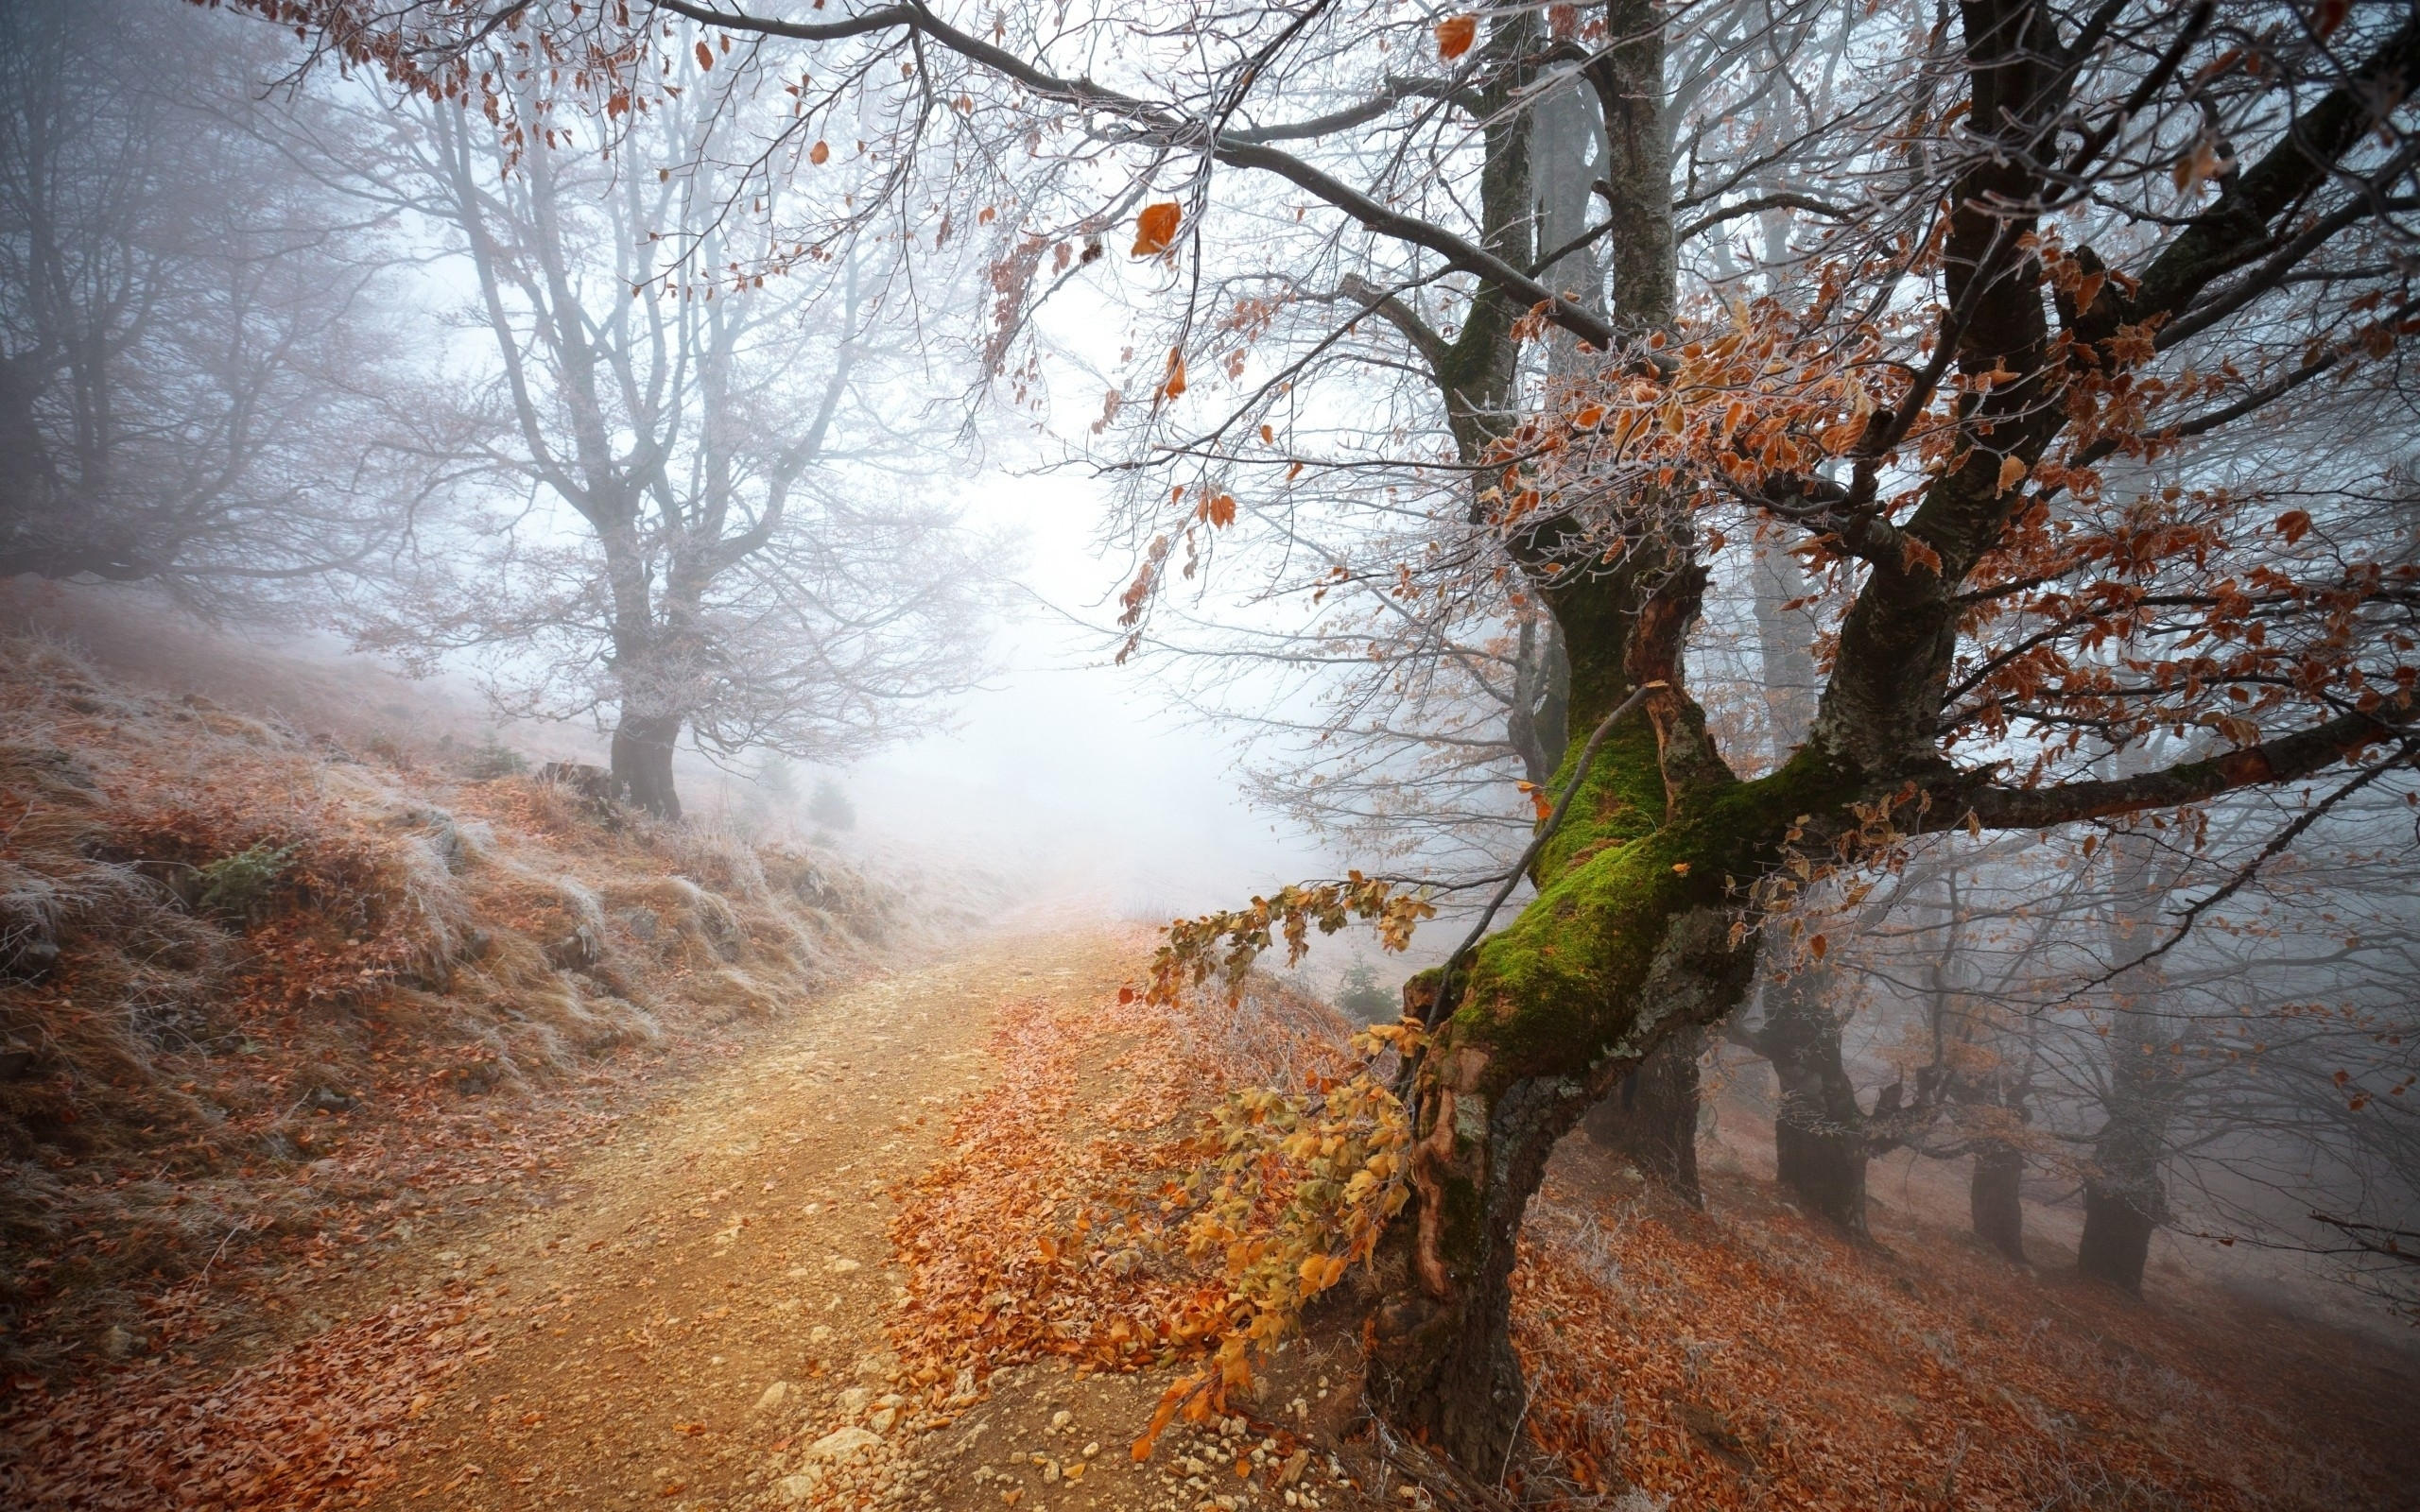 Autumn Falling Leaves Wallpaper Autumn Trees Path Amp Mist Wallpapers Autumn Trees Path